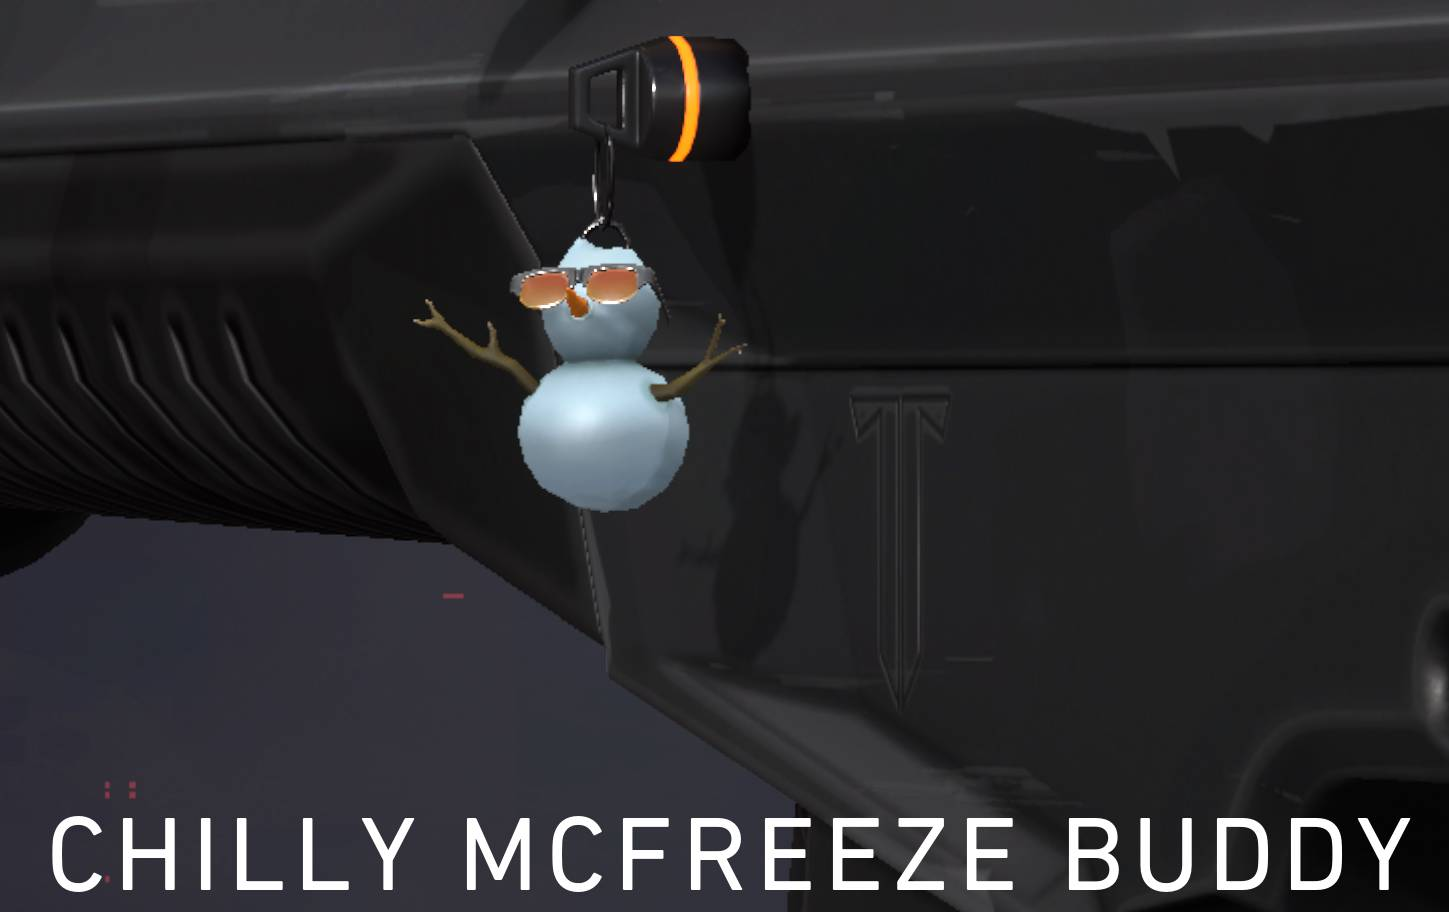 The Chilly McFreeze Gun Buddy. It's the free reward at the end of Chapter 9.